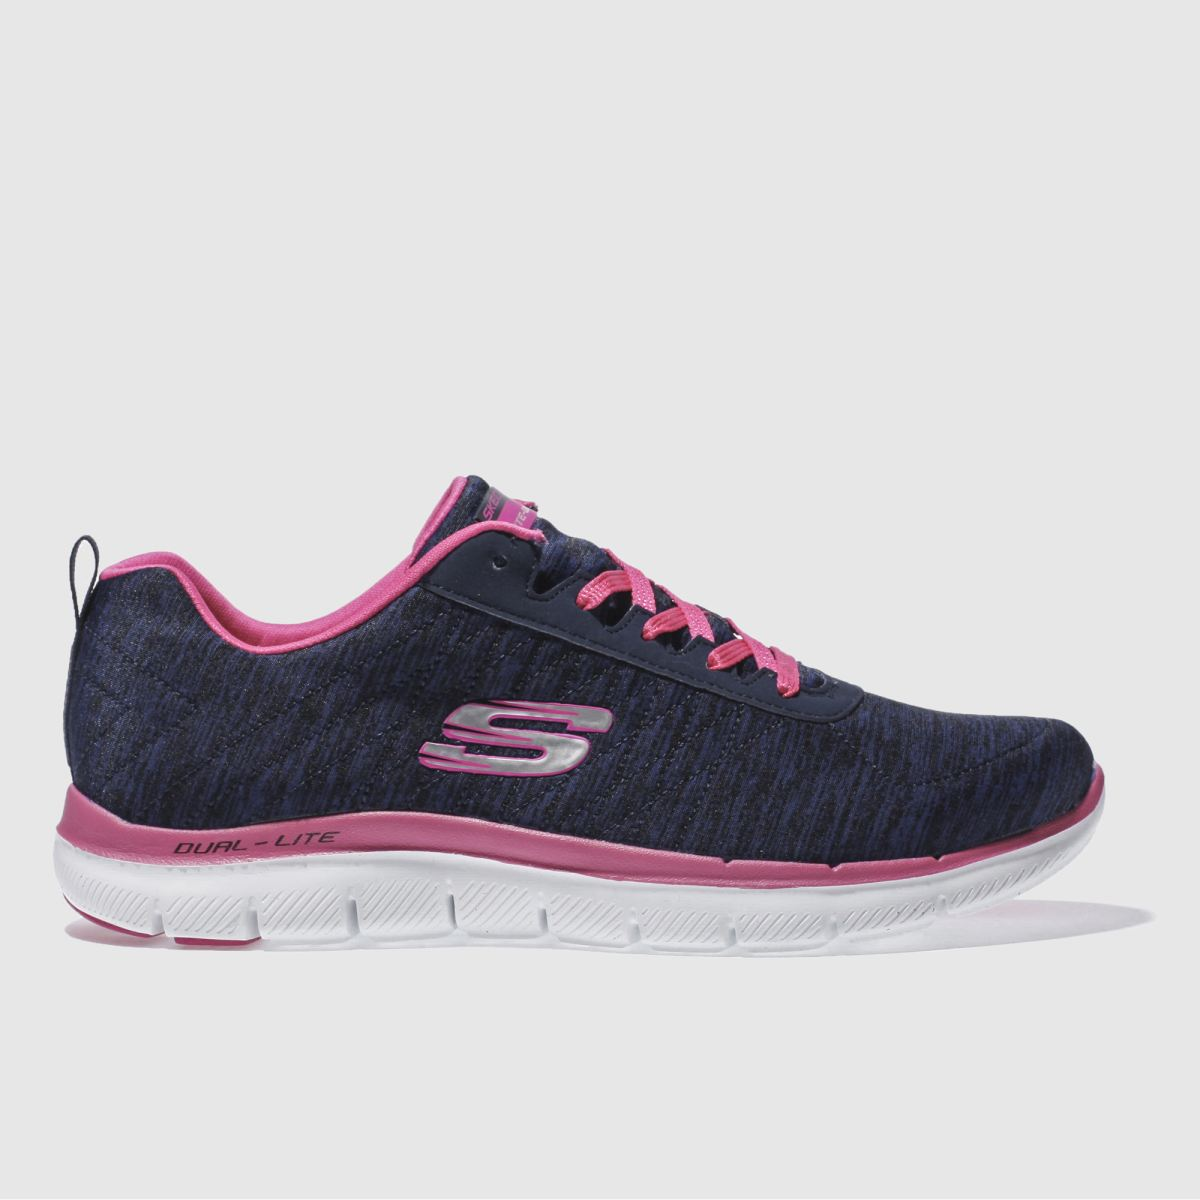 skechers navy & white flex appeal 2-0 trainers